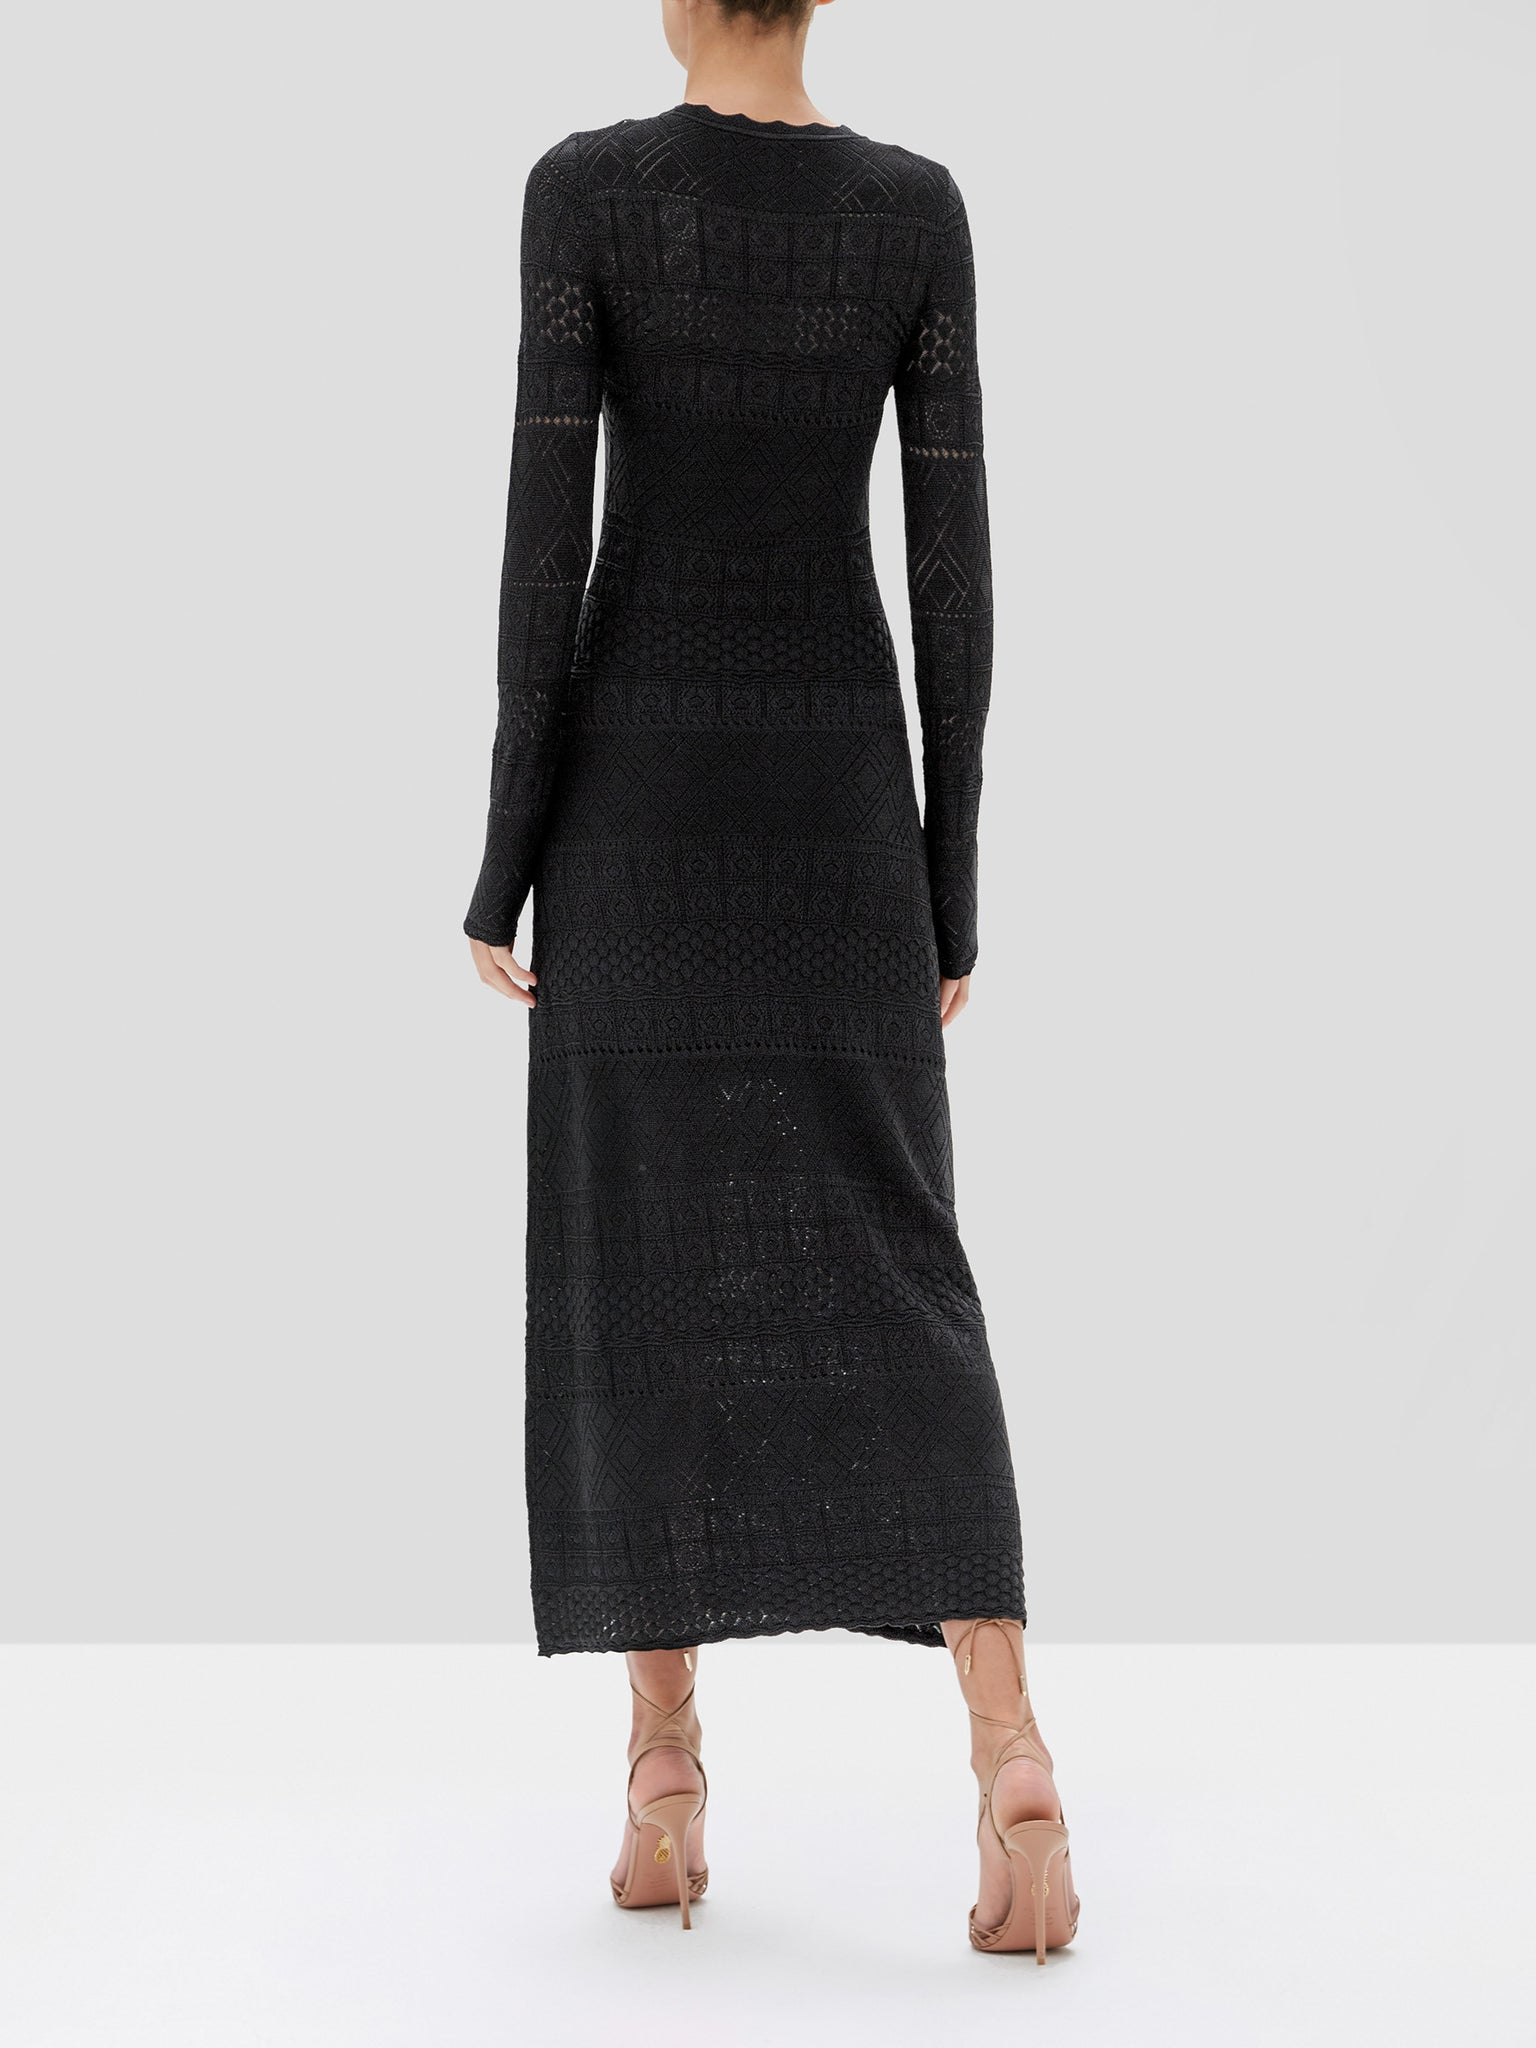 Volta dress in black  - Rear View